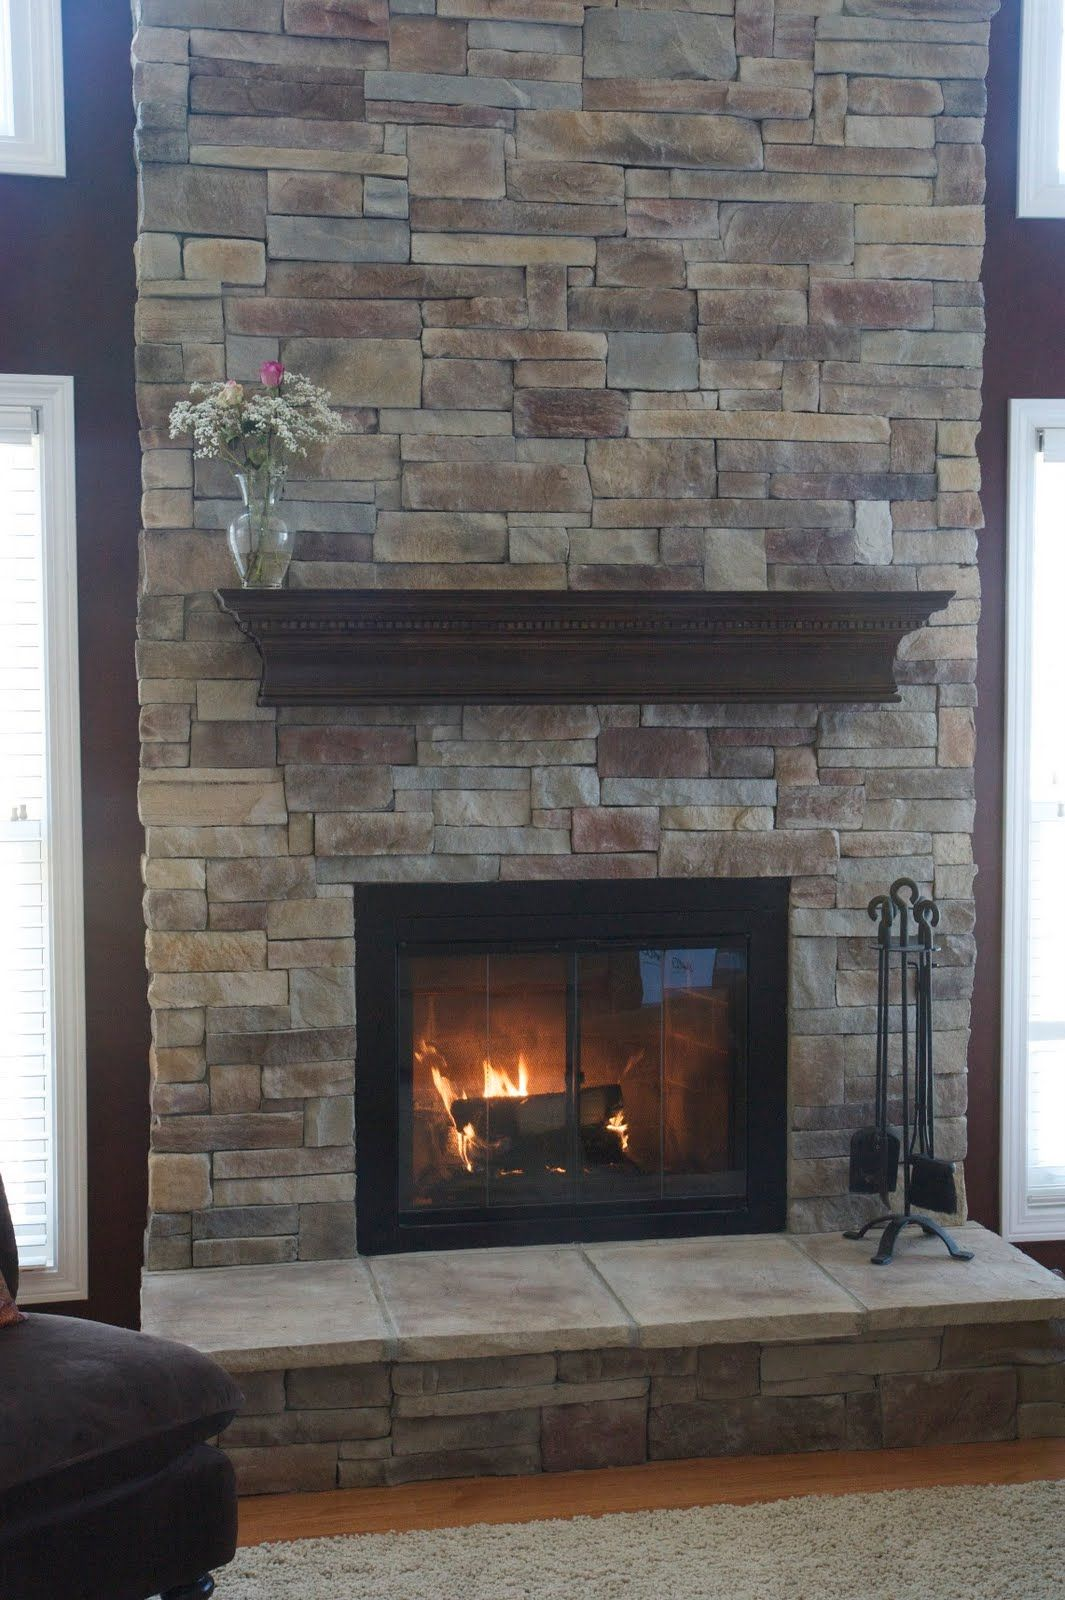 and a in home table coffee at with built stone fireplaces room also shelves for decorations living fireplace warm sofa winter wooden cream during fabric rustic